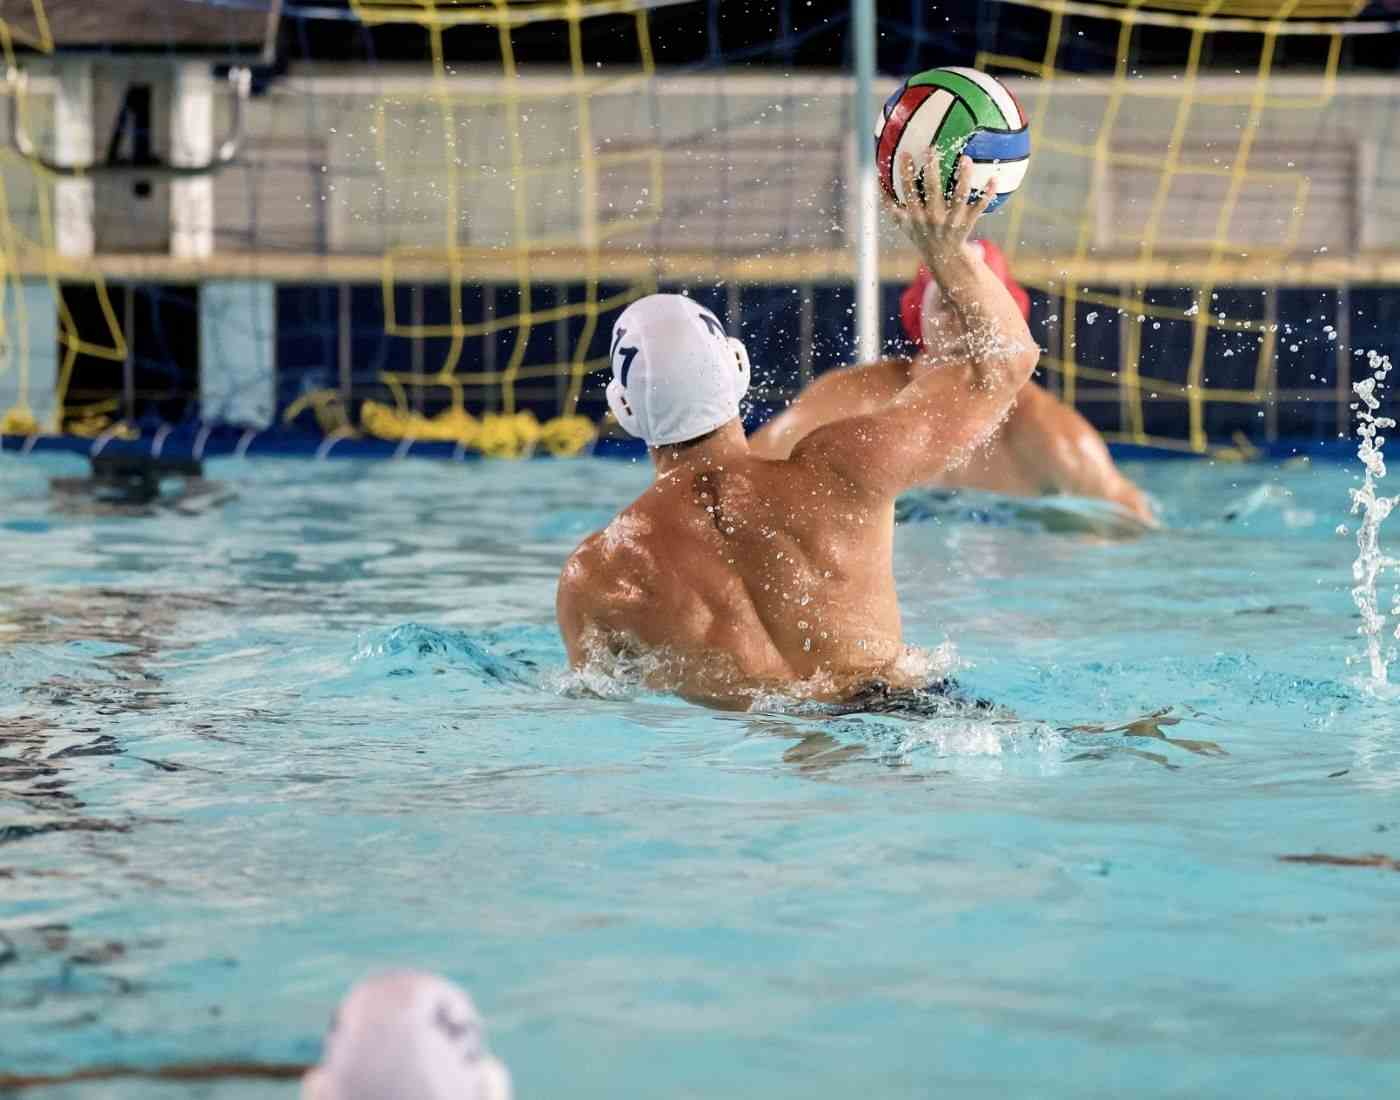 Water Polo sports